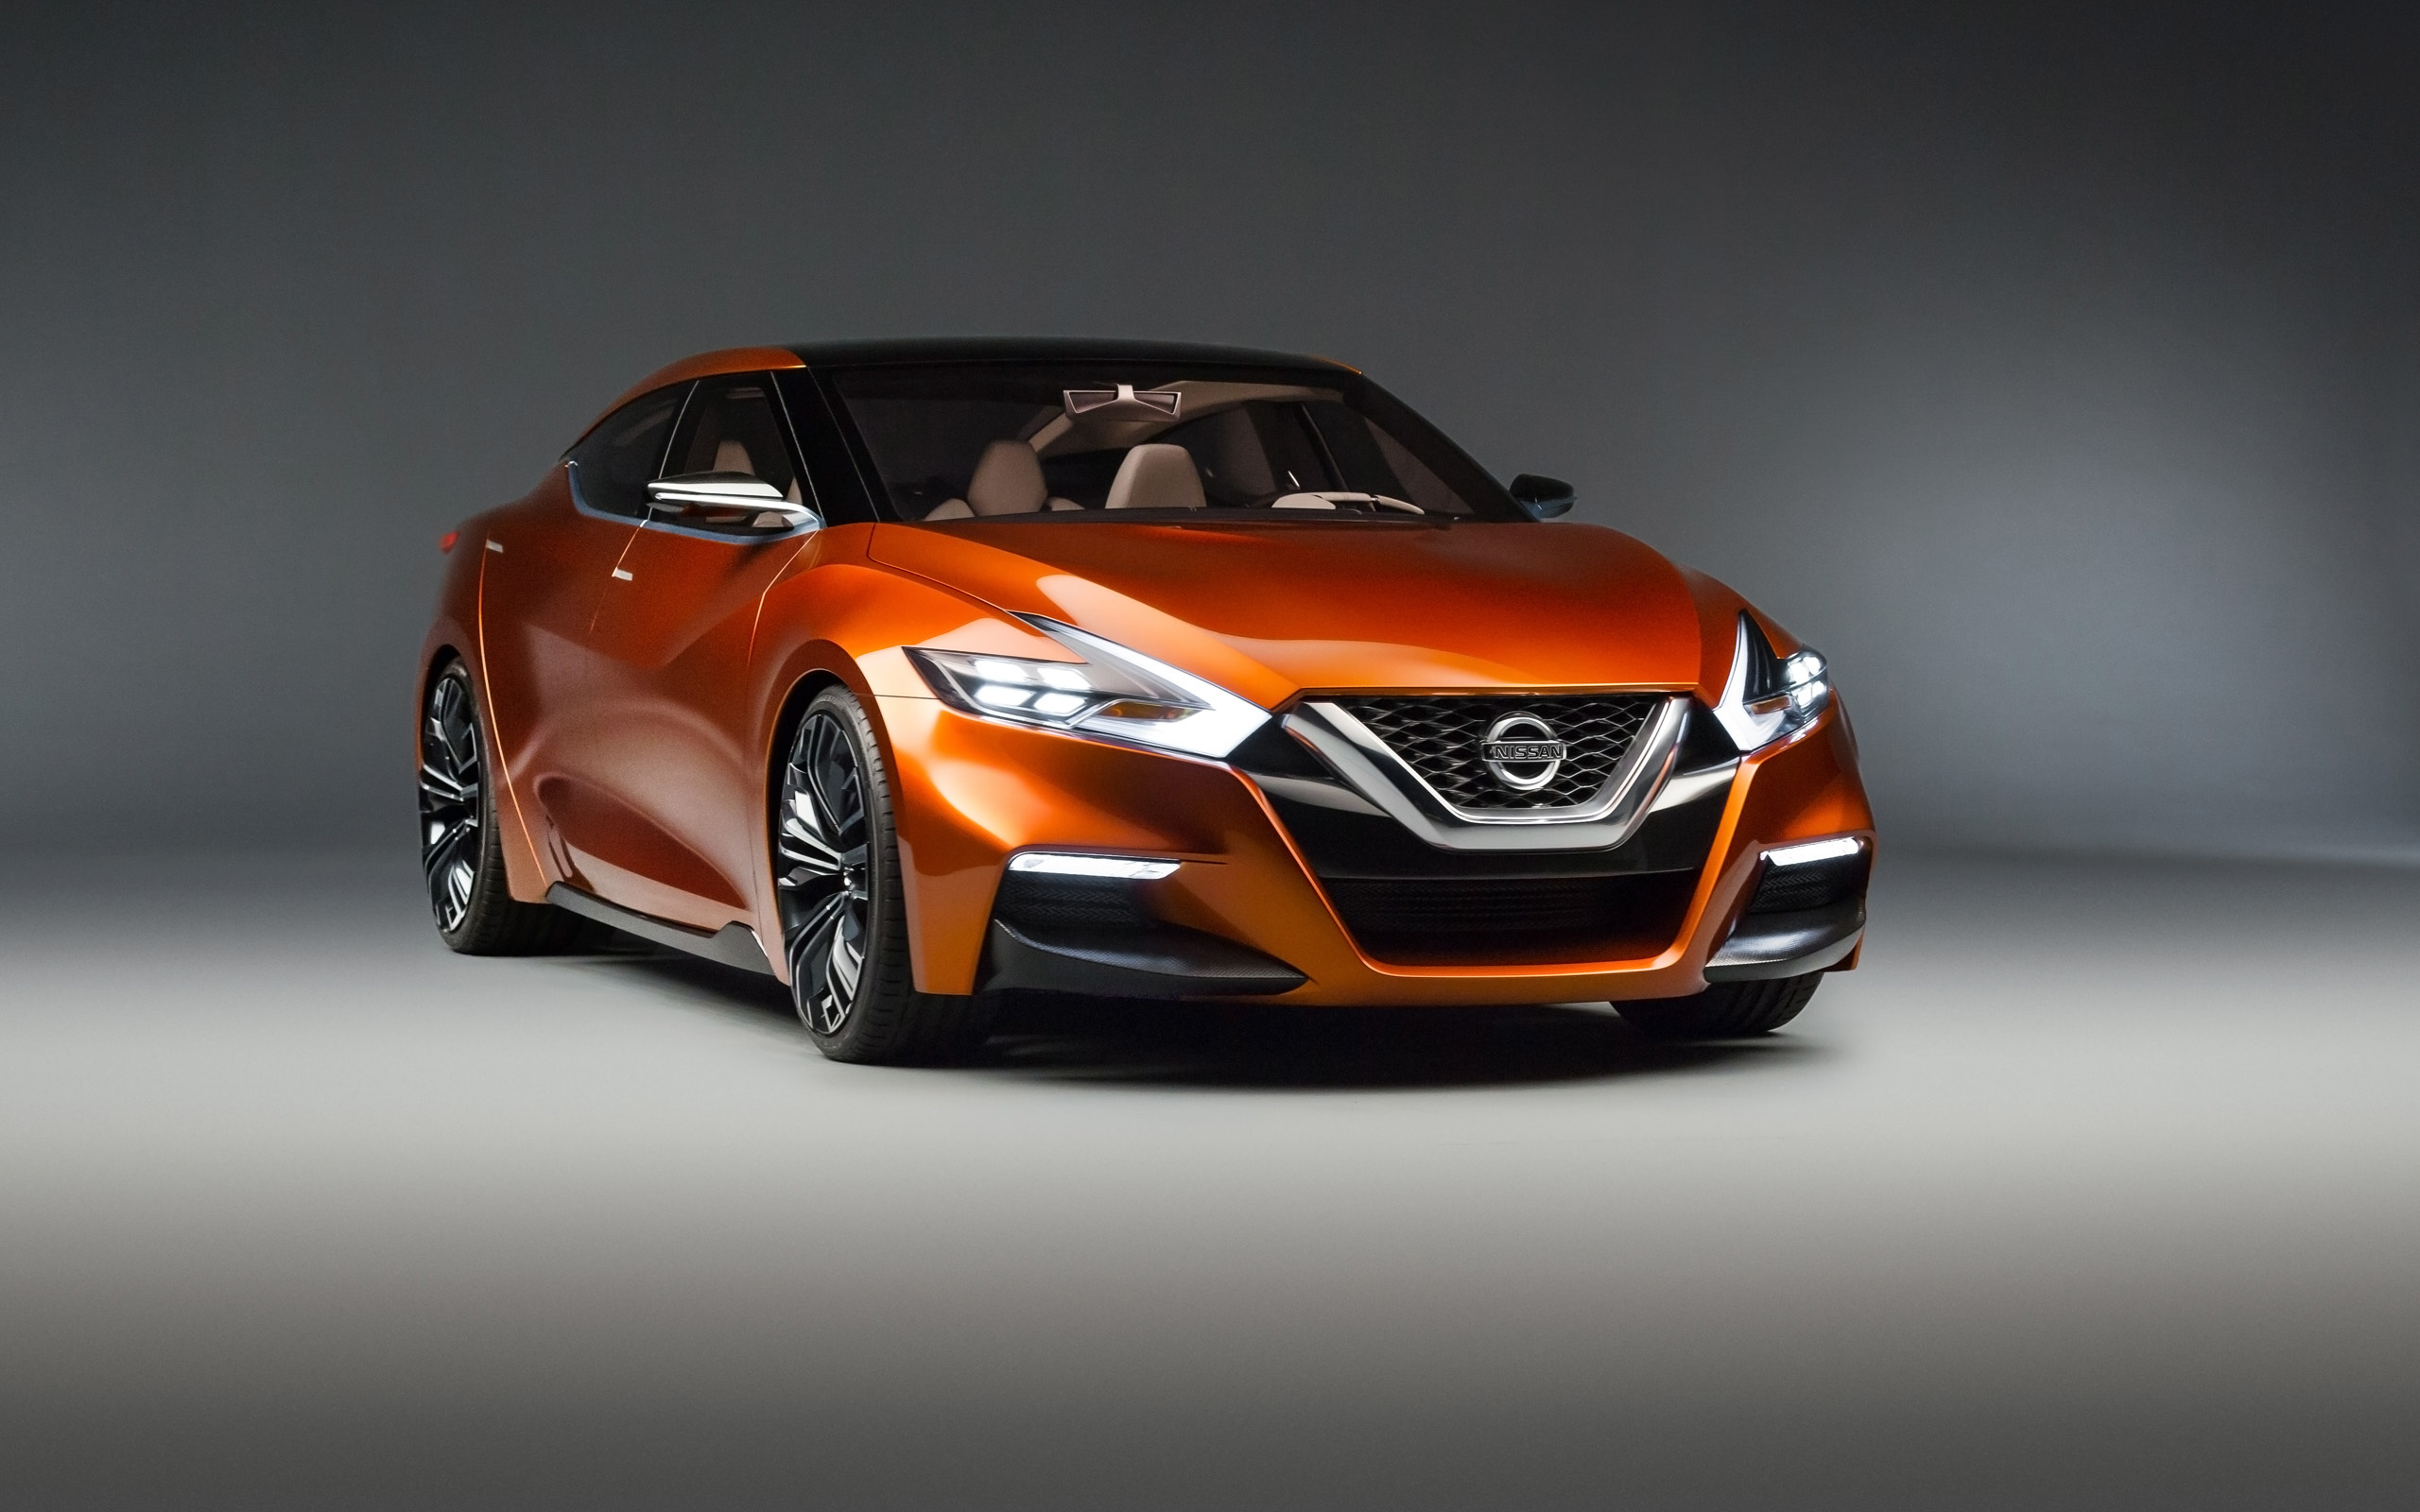 2560x1600 - Nissan Concept Wallpapers 9